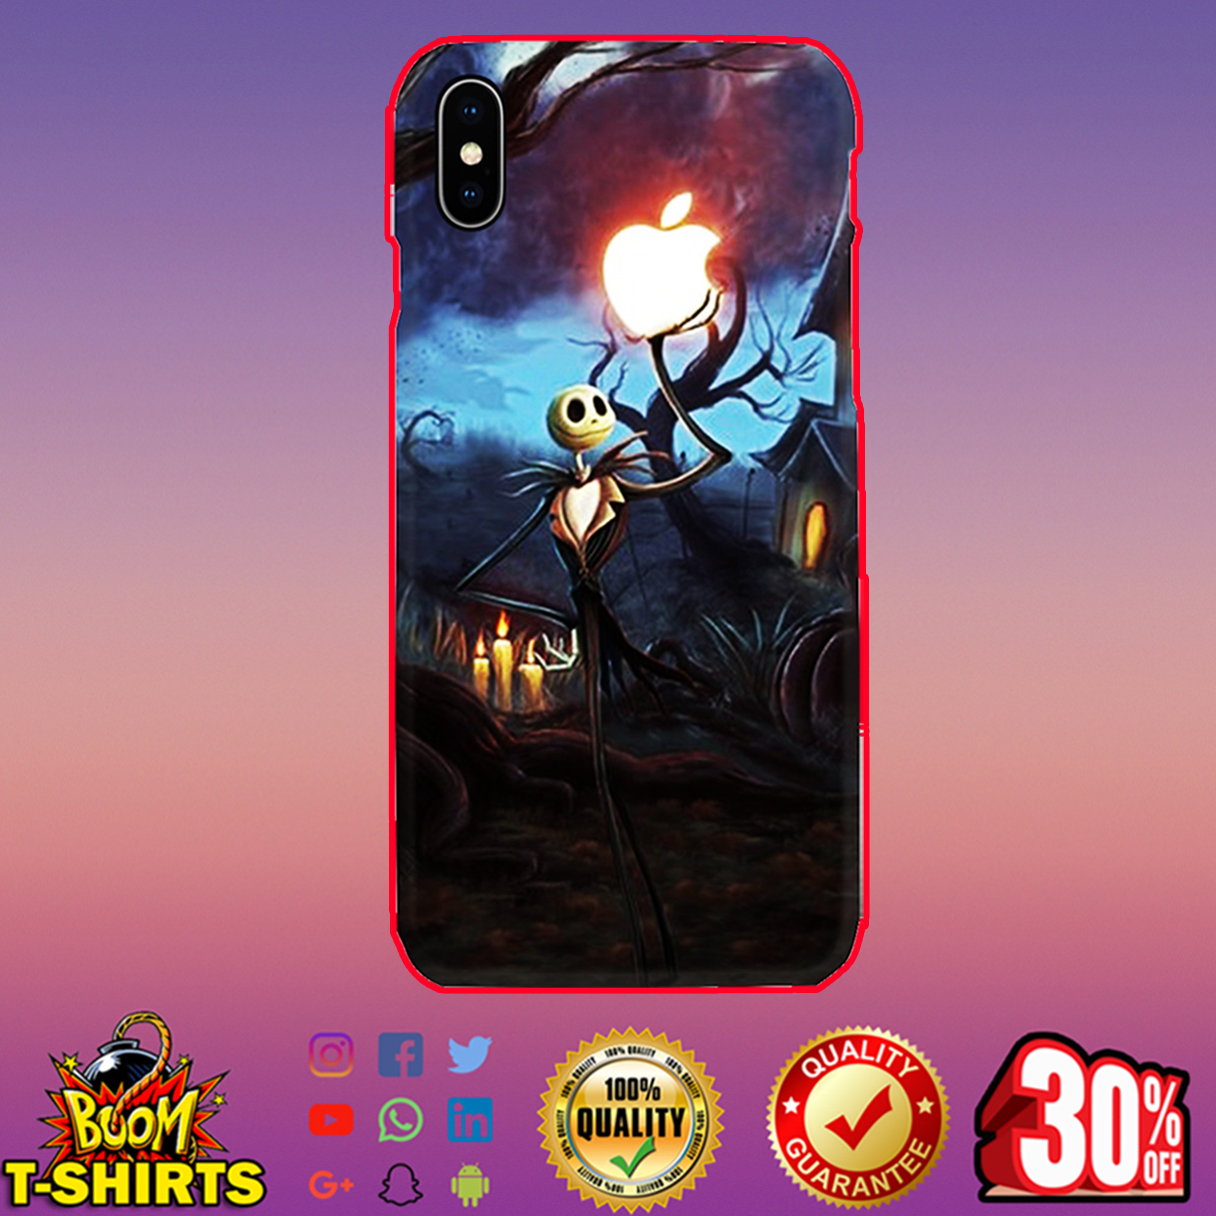 Jack Skellington Apple phone case - iphone X case